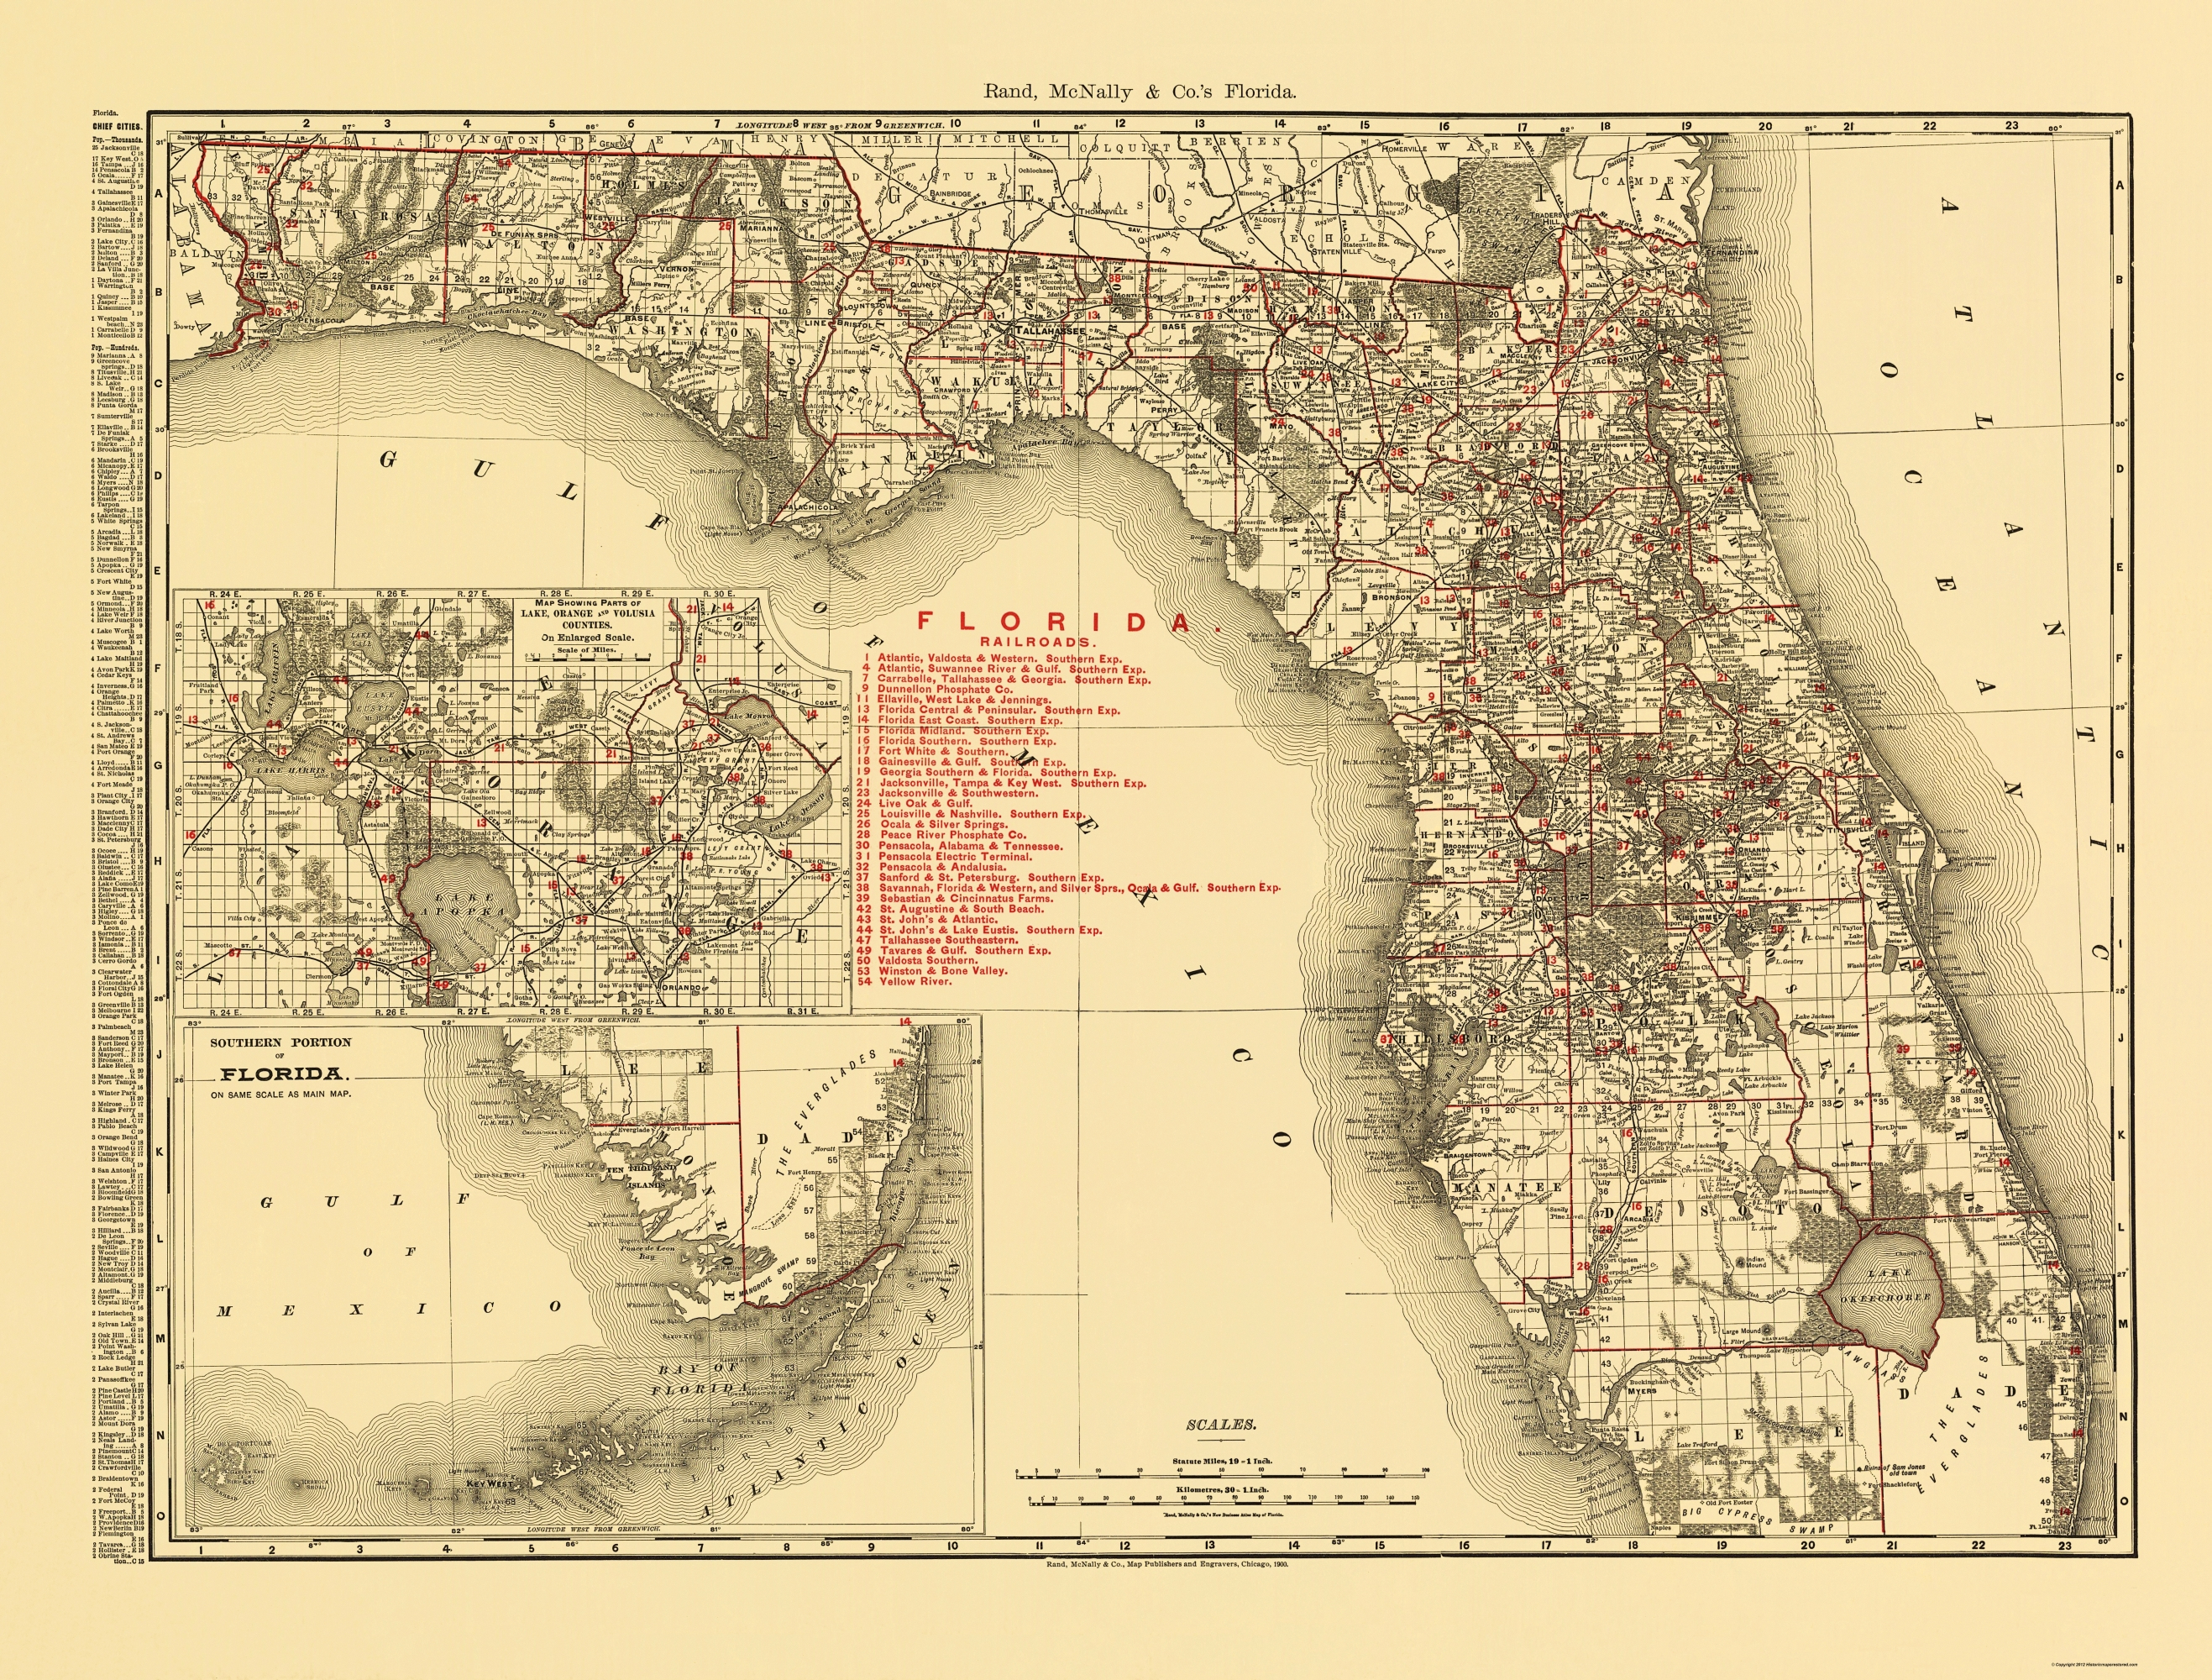 Old State Map - Florida - Rand Mcnally 1900 - Old Maps Of Jacksonville Florida